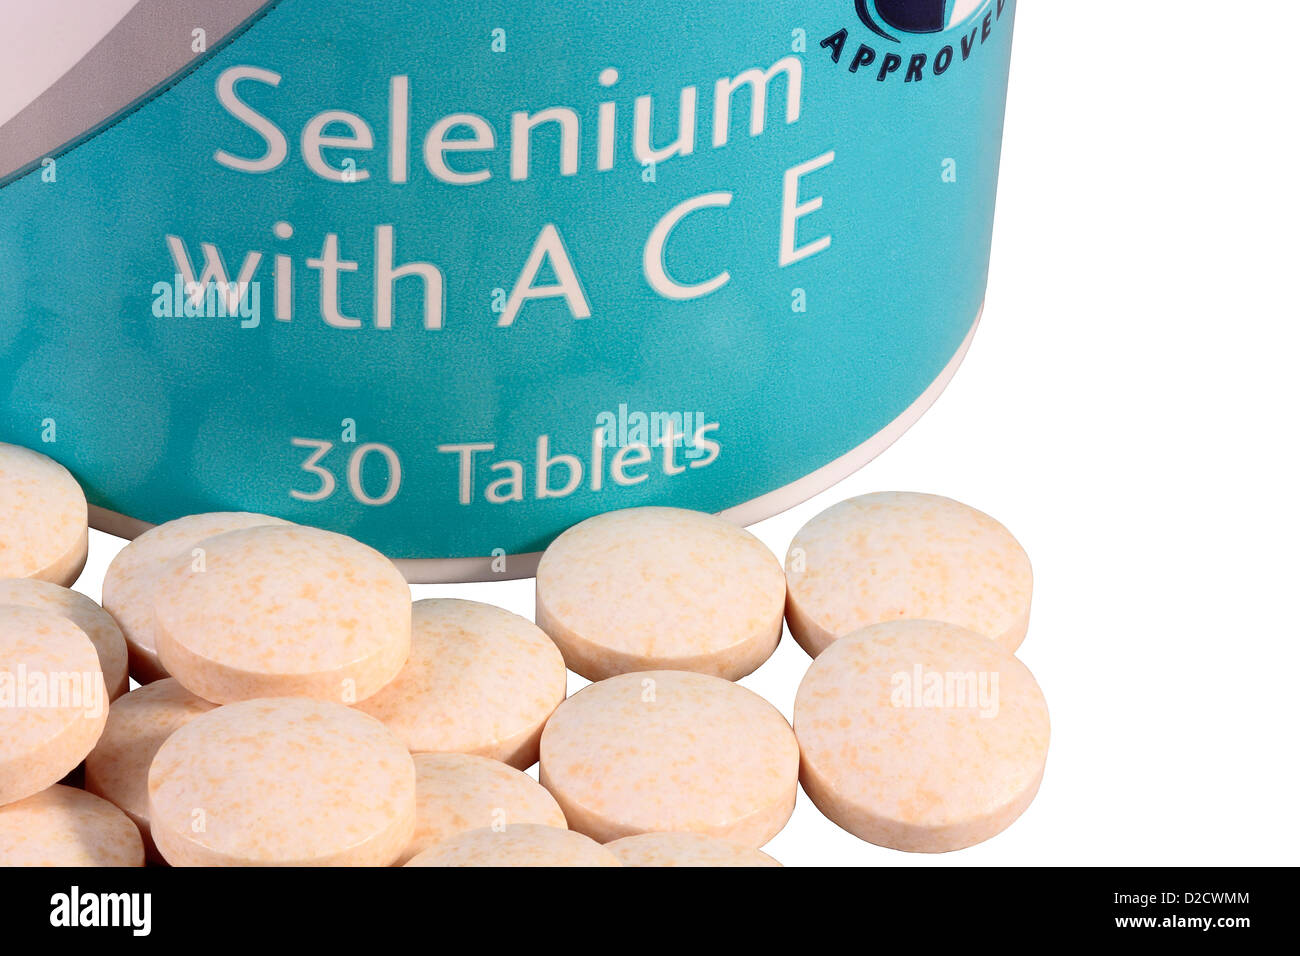 Selenium ACE tablets isolated on white background - Stock Image